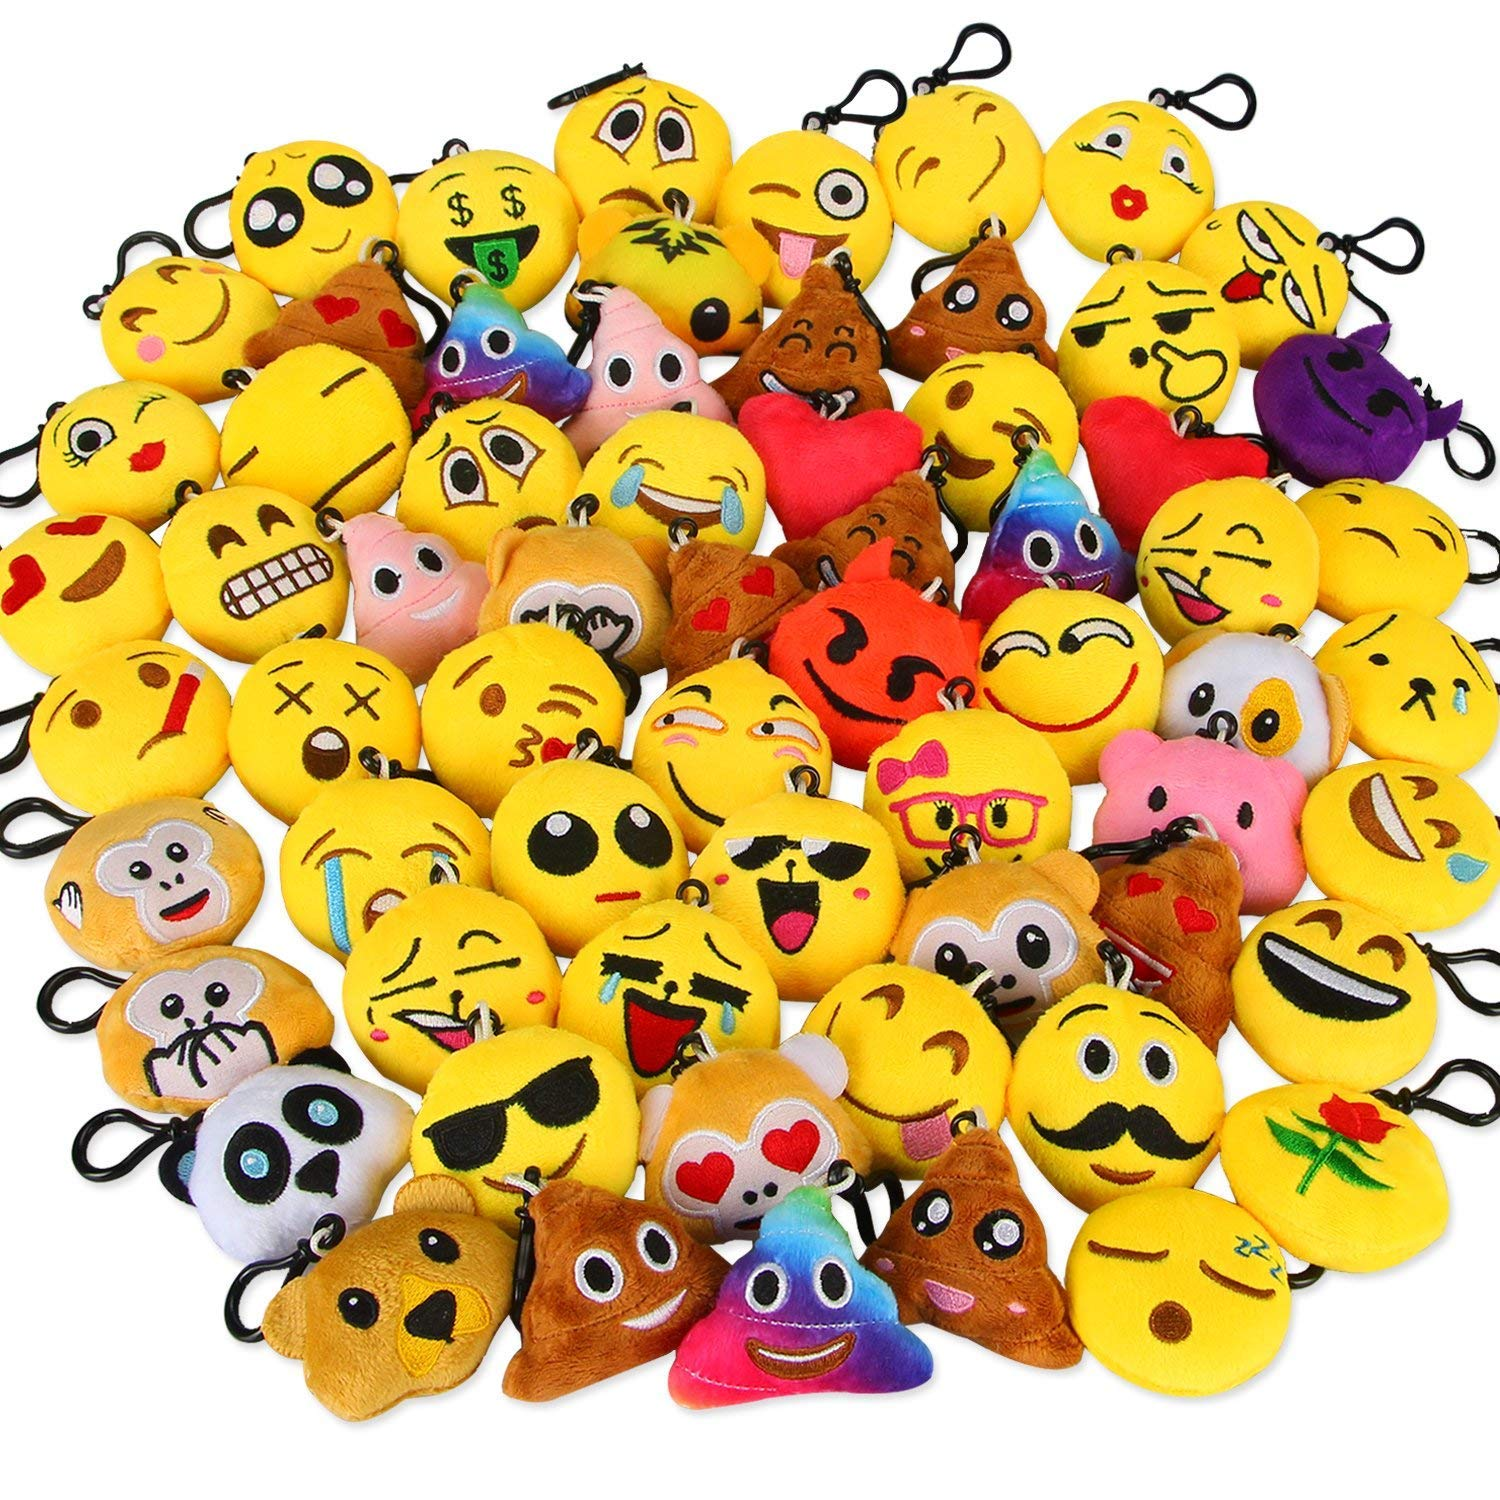 Dreampark Emoji Keychain Mini Cute Plush Pillows, Party Favors for Kids Christmas / Birthday Party Supplies, Emoticon Gifts Toys Carnival Prizes for Kids School Classroom Rewards (64 Pack) by Dreampark